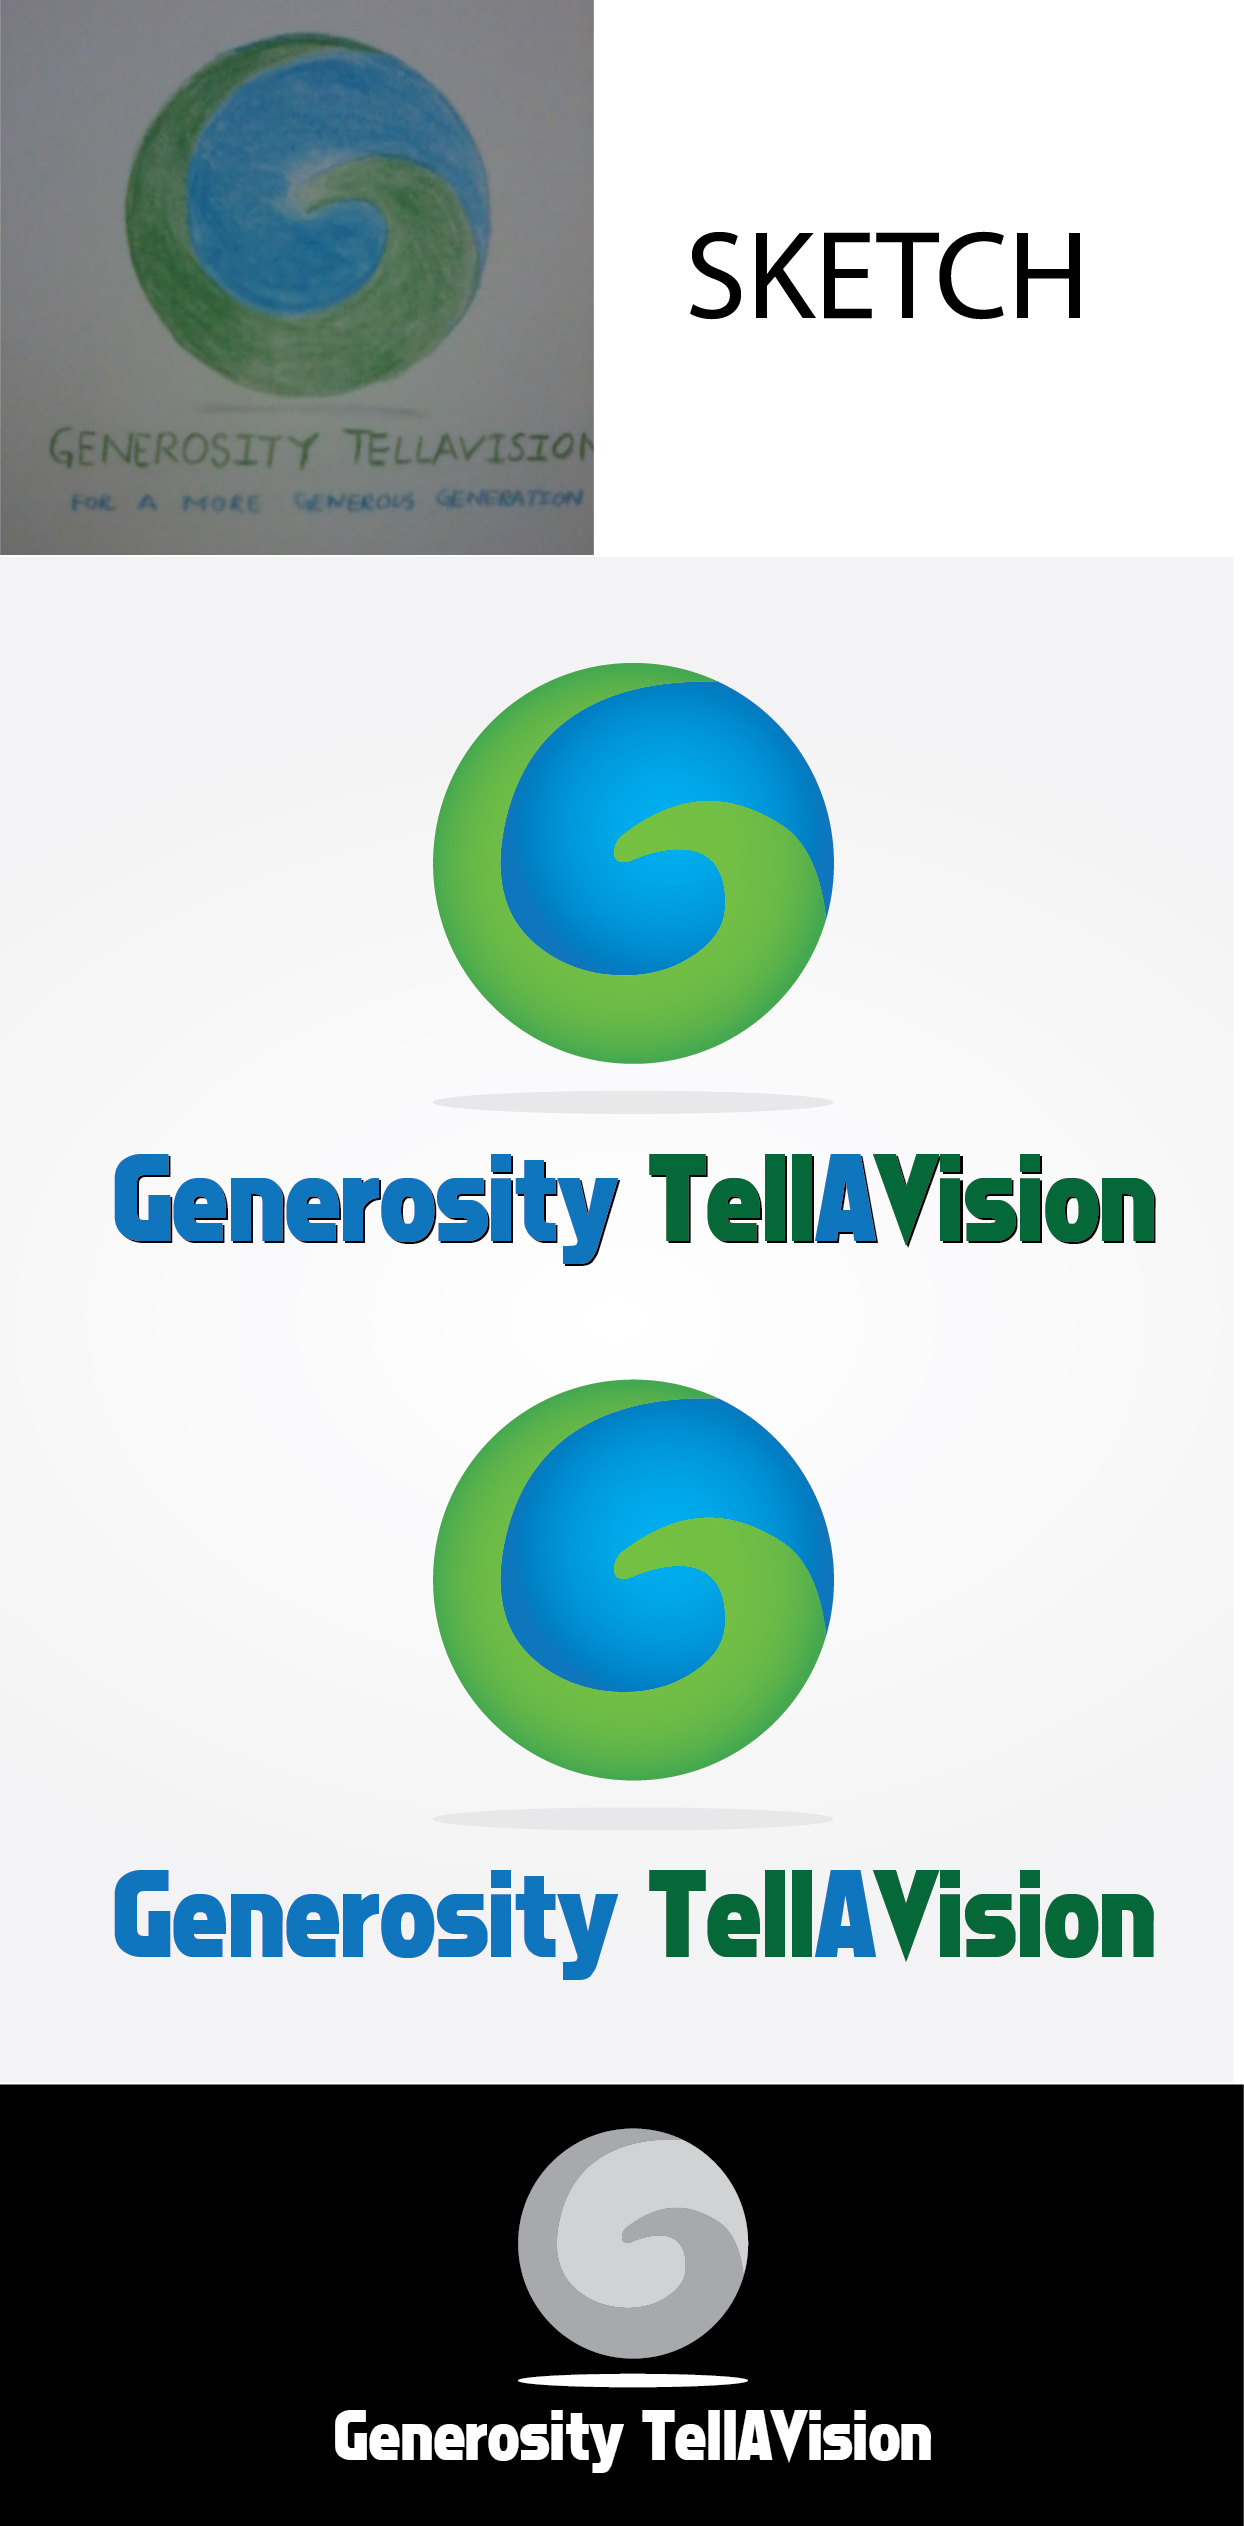 Logo Design by mediaproductionart - Entry No. 44 in the Logo Design Contest Artistic Logo Design for Generosity TellAVision.